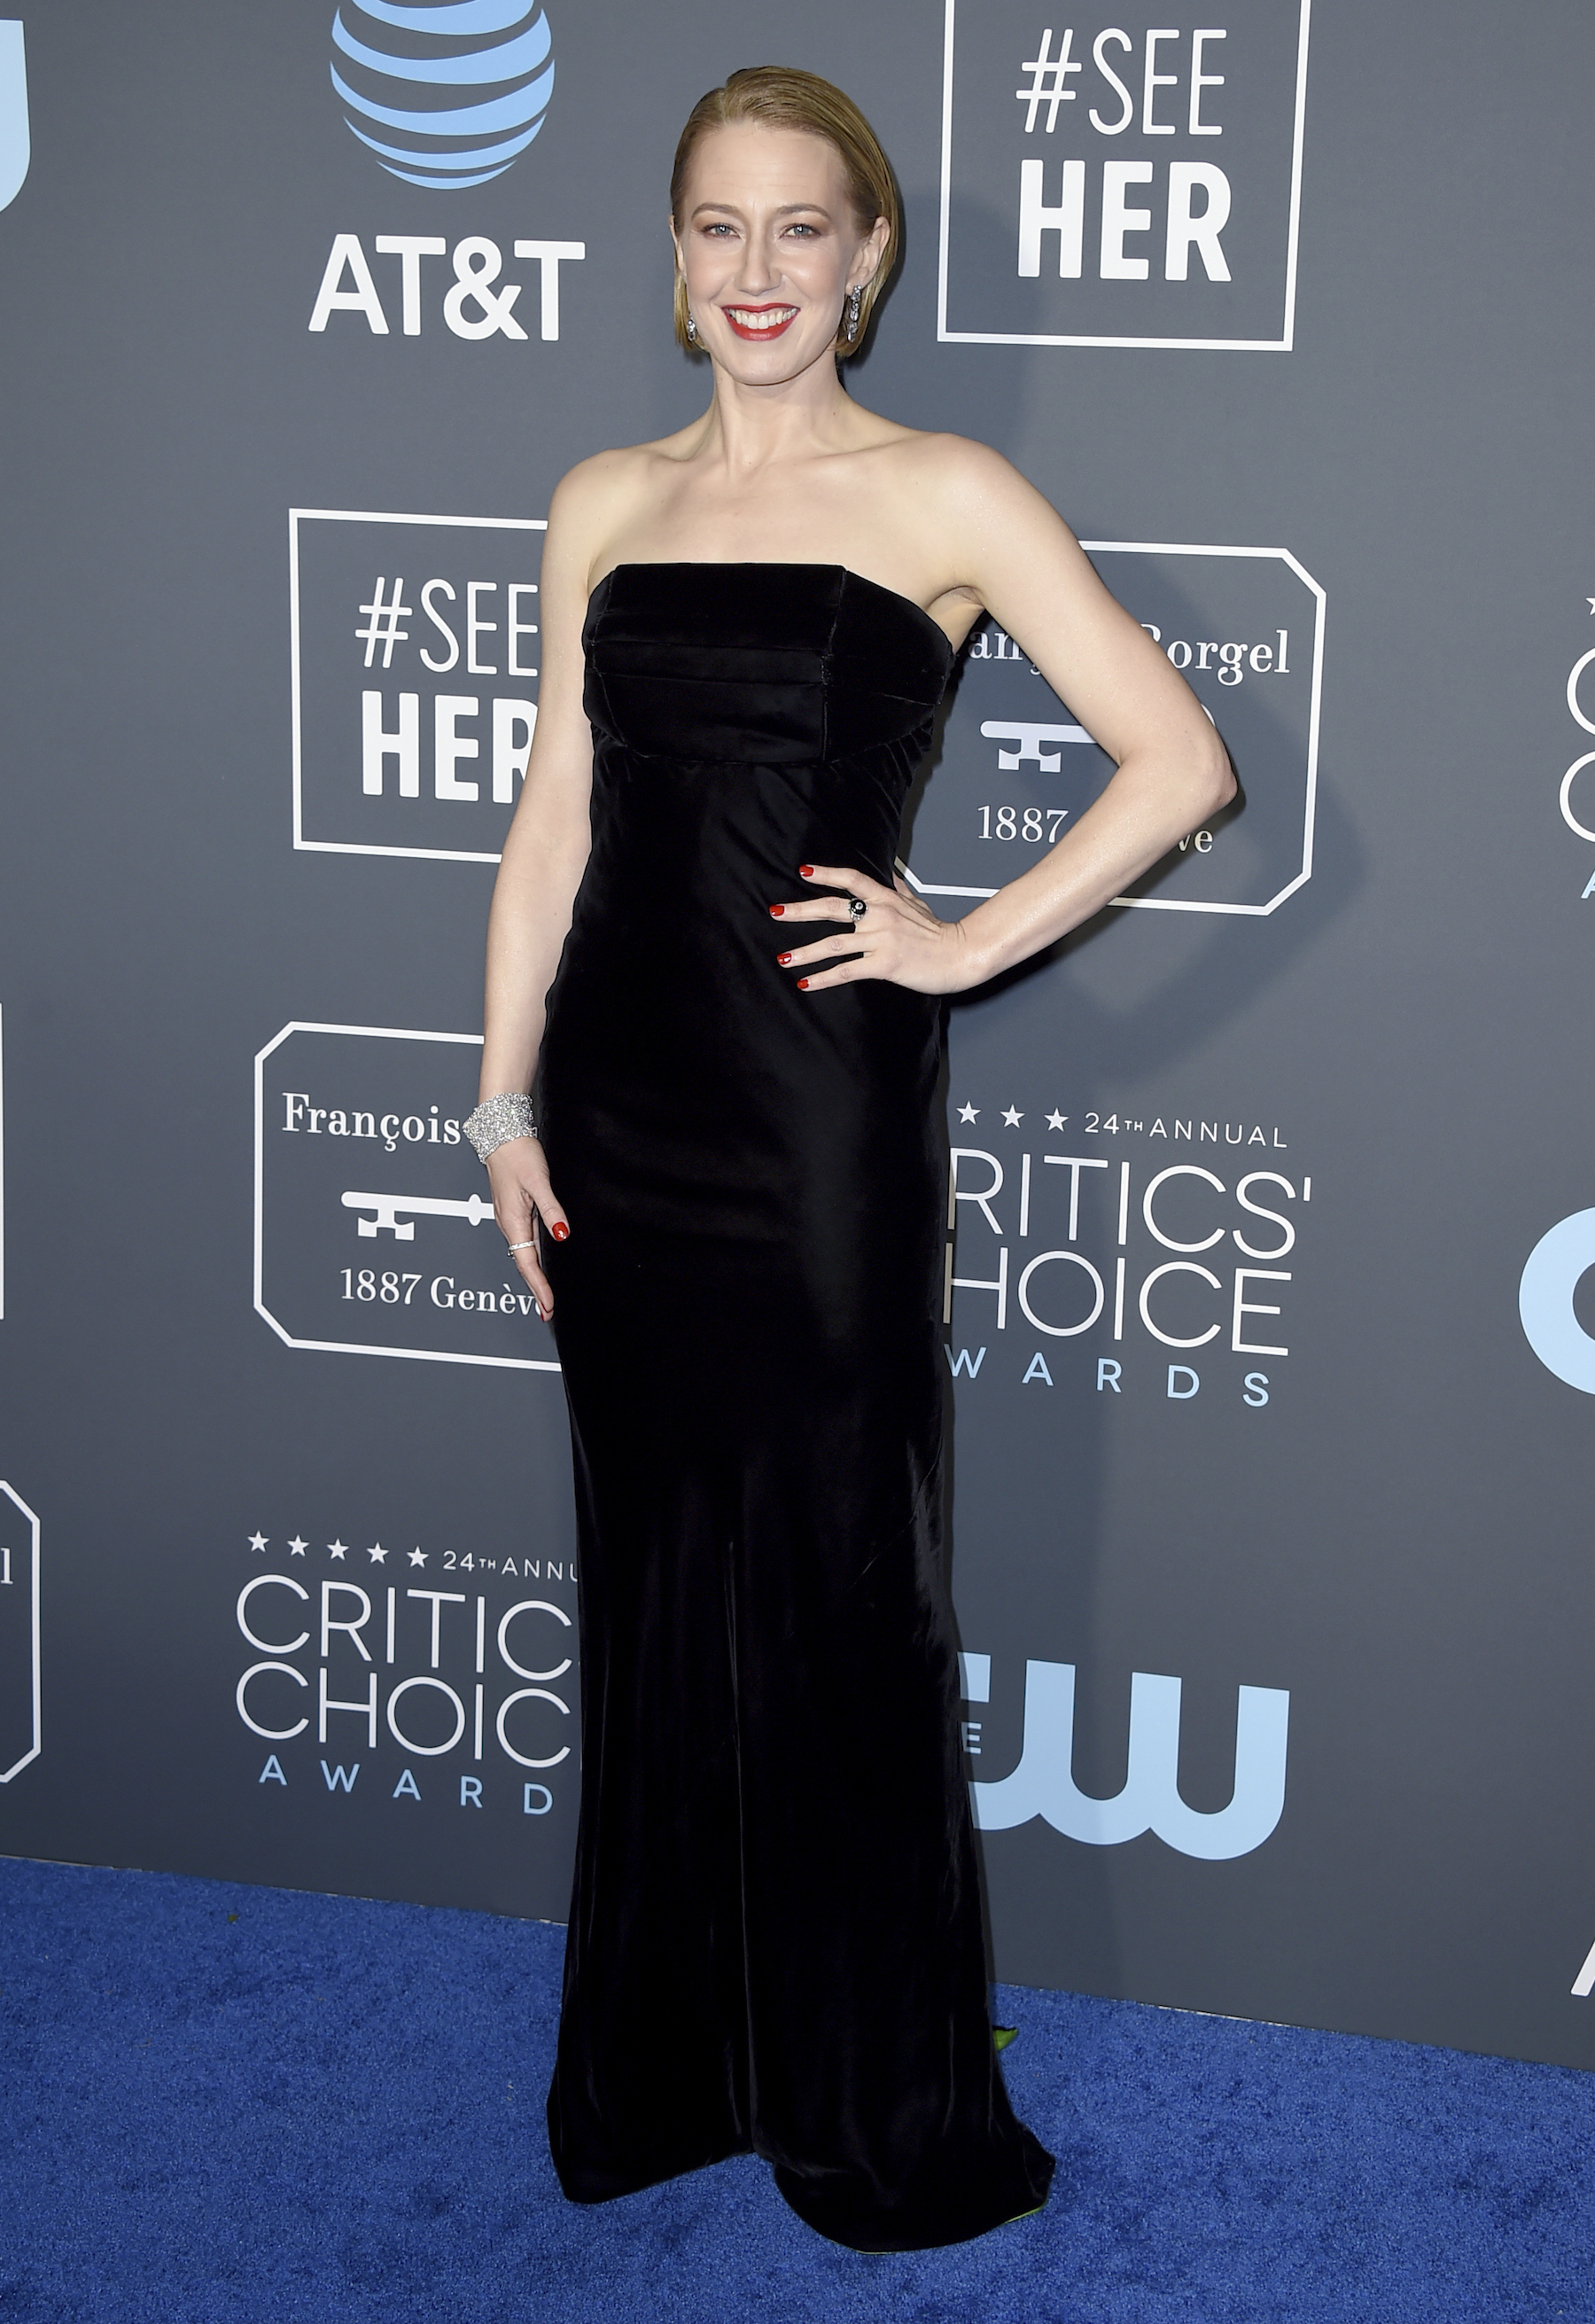 <div class='meta'><div class='origin-logo' data-origin='AP'></div><span class='caption-text' data-credit='Jordan Strauss/Invision/AP'>Carrie Coon arrives at the 24th annual Critics' Choice Awards on Sunday, Jan. 13, 2019, at the Barker Hangar in Santa Monica, Calif.</span></div>